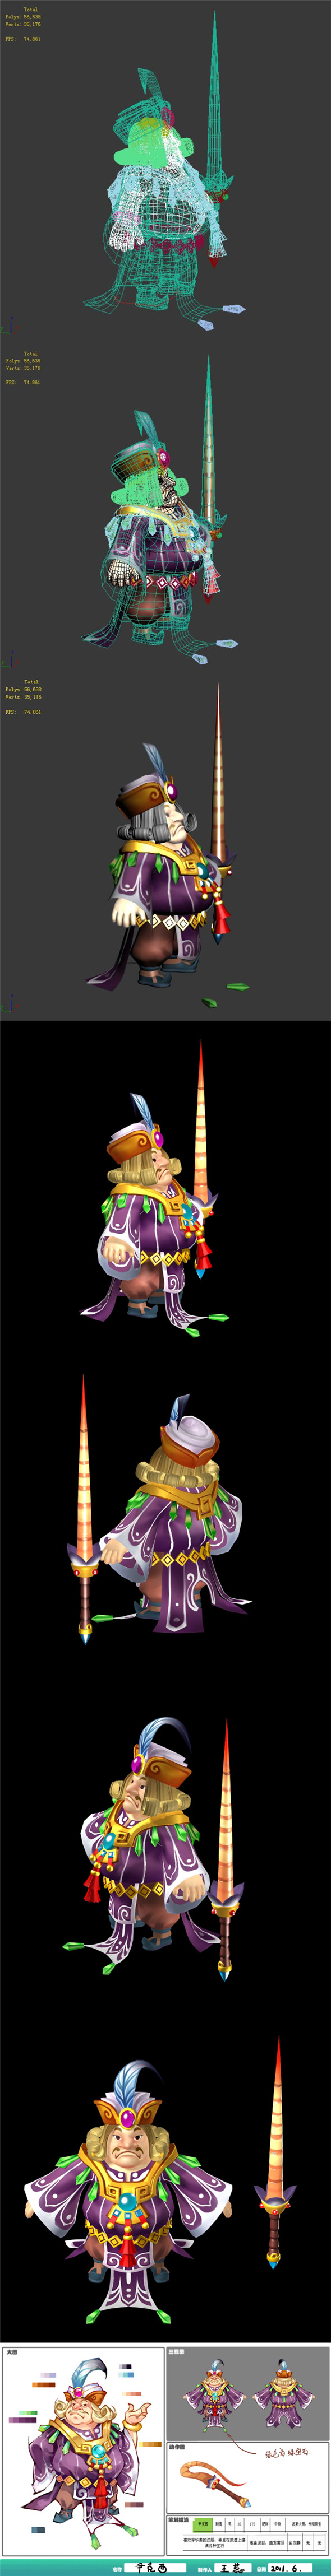 The characters of the game - Iksi - 3DOcean Item for Sale